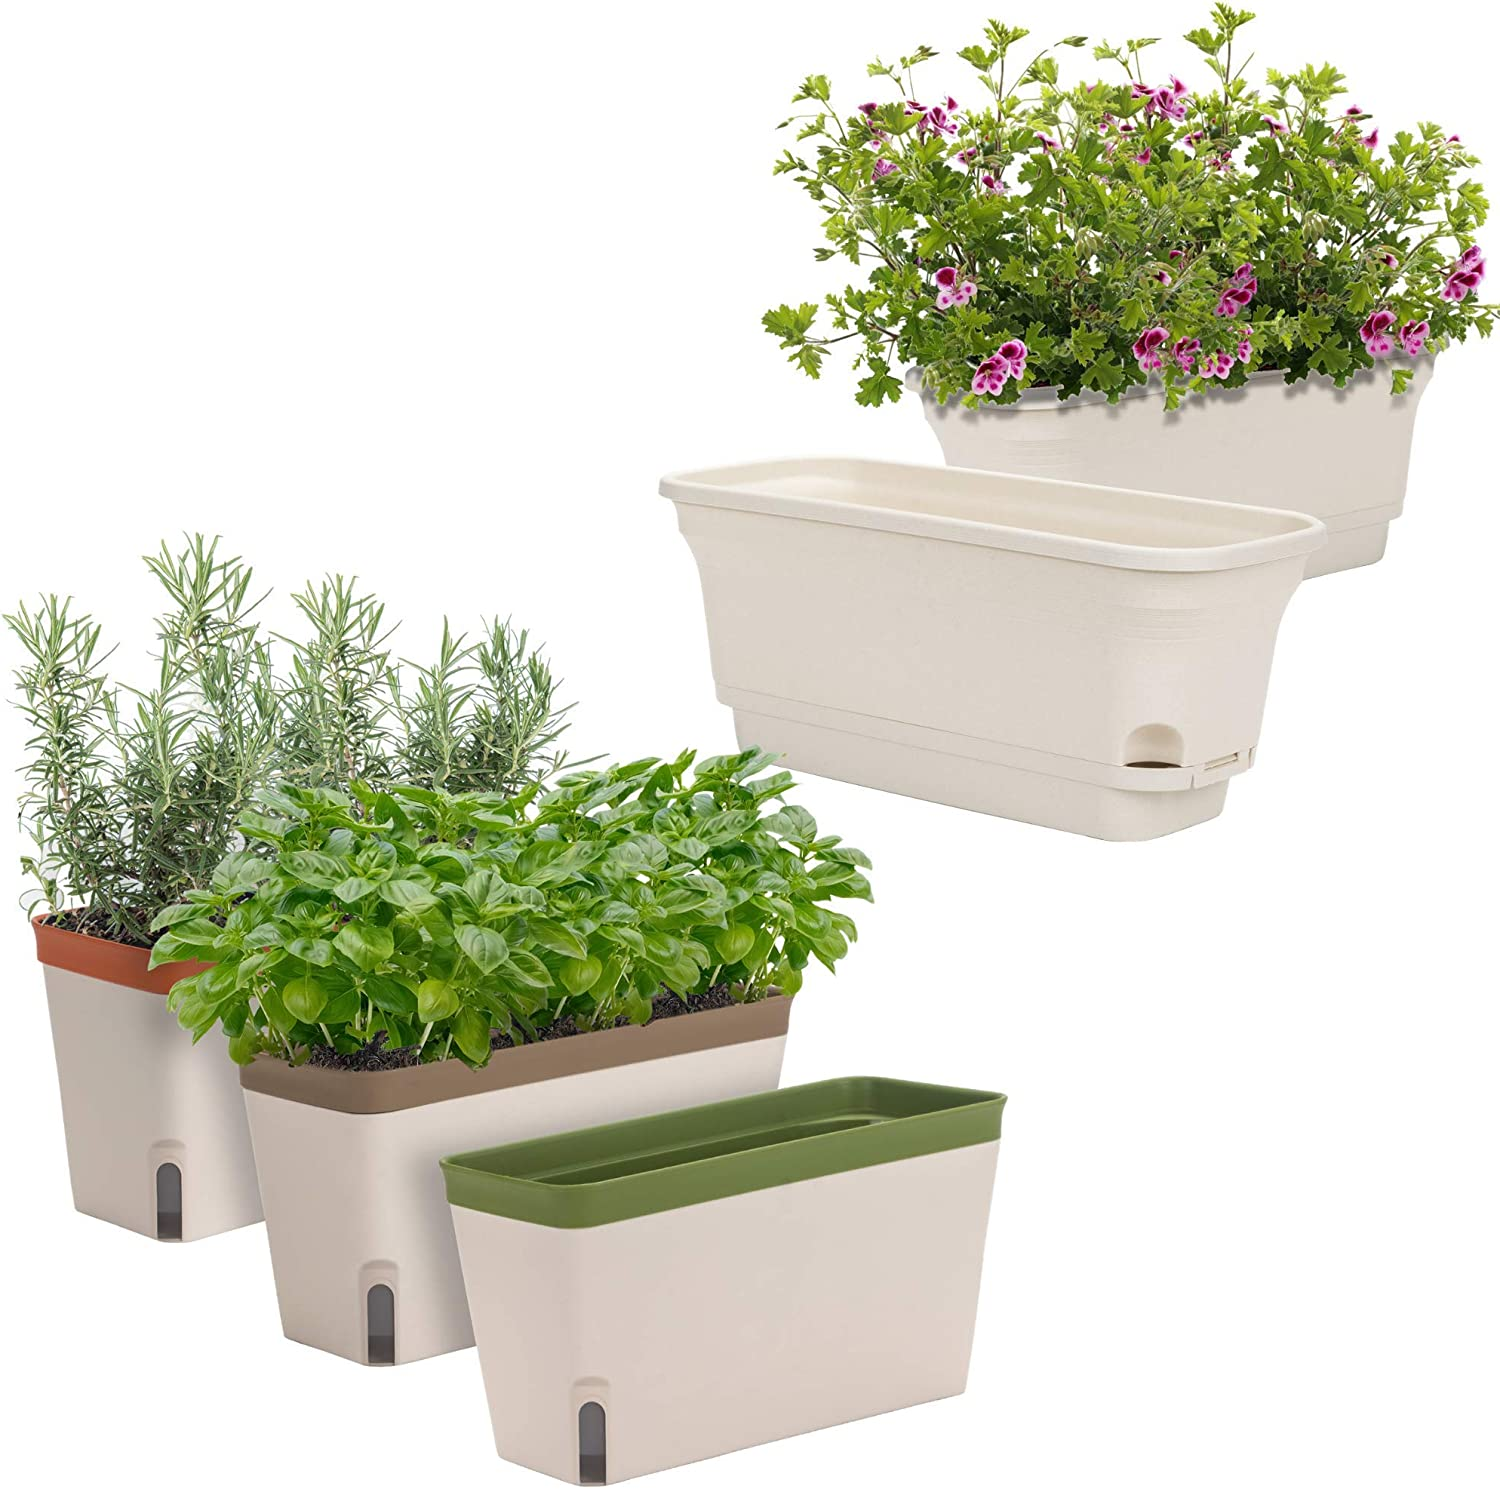 Set of 3 and Set of 2 Windowsill Herb Planters Bundle | Self-Watering Rectangular Herb Garden Boxes | Plastic Pots for Herbs, Greens, Flowers, House Plants and Succulents | Indoor/Outdoor Flowerpots